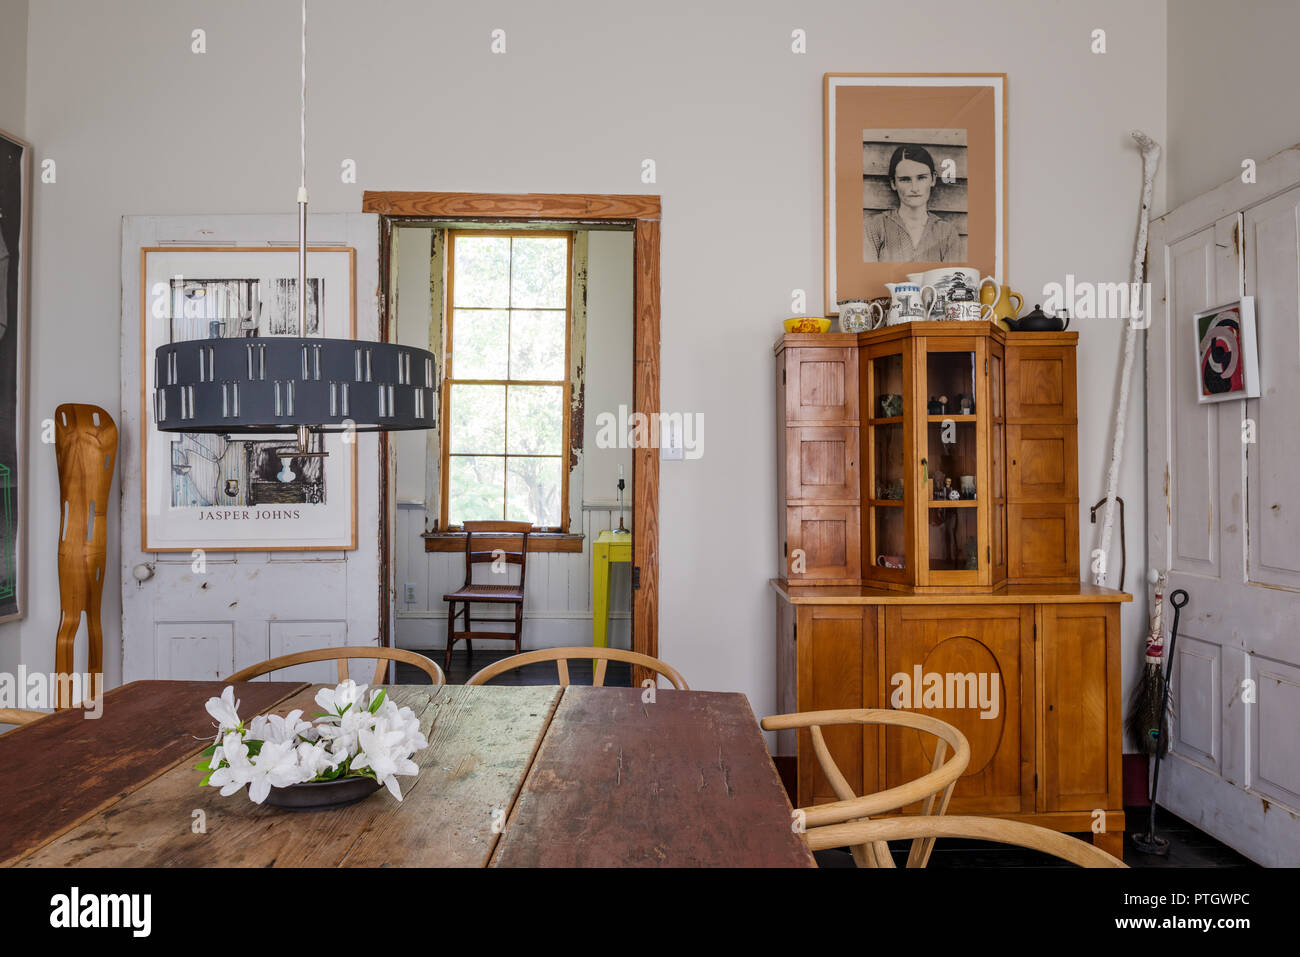 c18 New England drop leaf table with Wishbone chairs by Hans J Wegner. Pendant light is mid-century Scandinavian. - Stock Image